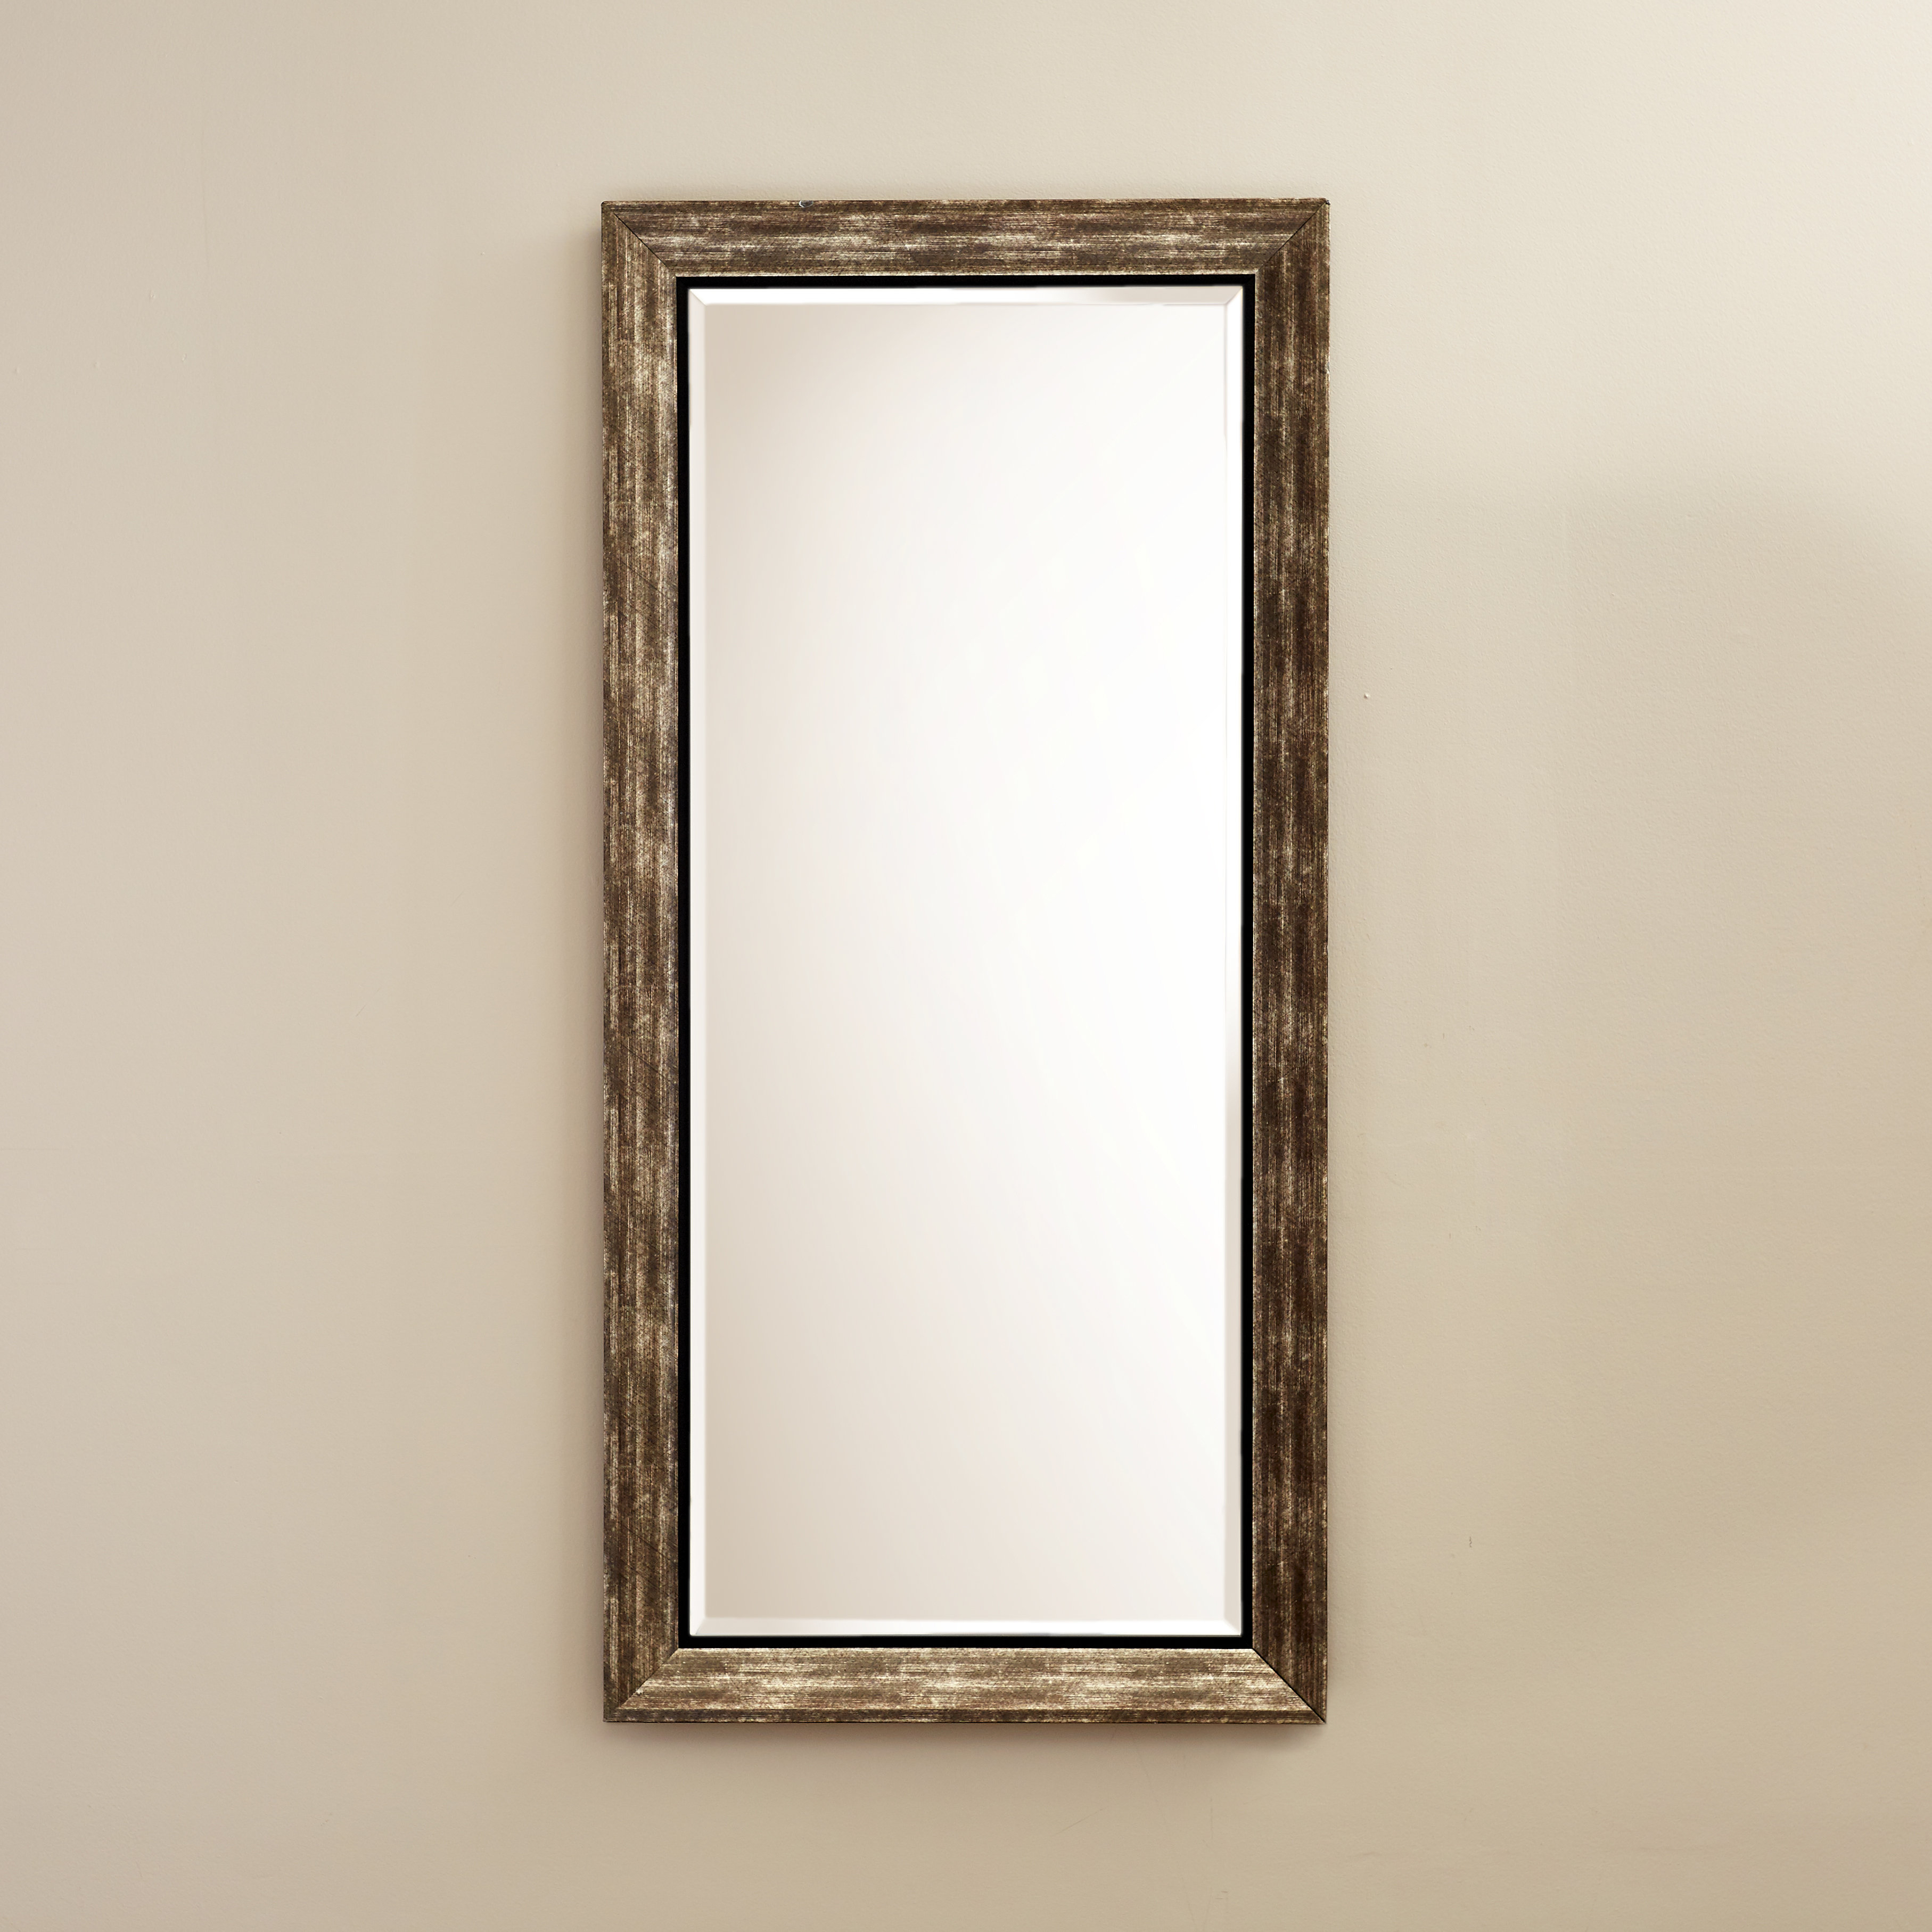 Esmond Accent Mirror Intended For Dedrick Decorative Framed Modern And Contemporary Wall Mirrors (Image 9 of 20)